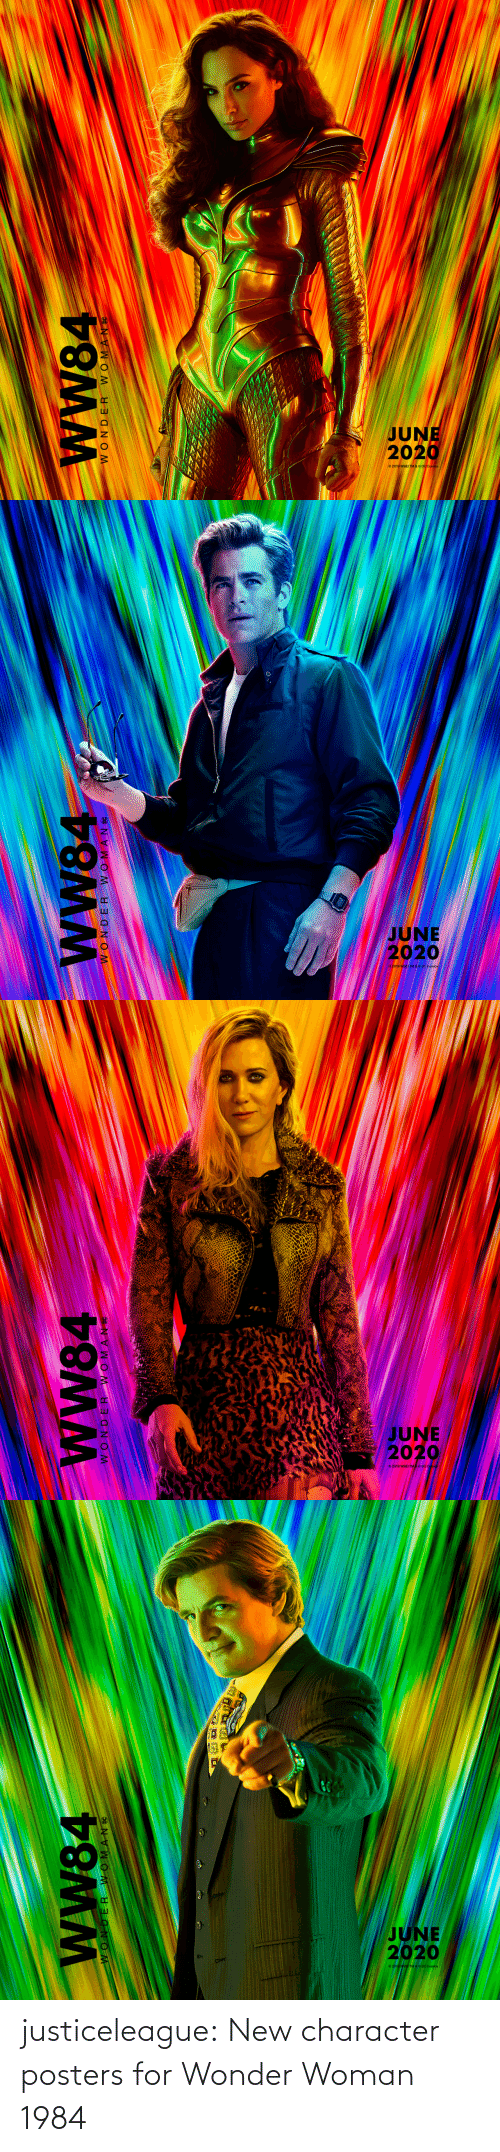 posters: WW84  JI NVWO M   JUNE  2020  wW84  WONDER WOMANC   JUNE  2020  2019 WBEI TMGOC  wW84  WONDER WOMAN C   JUNE  2020  wW84  30 NVWOM N OM justiceleague: New character posters for Wonder Woman 1984